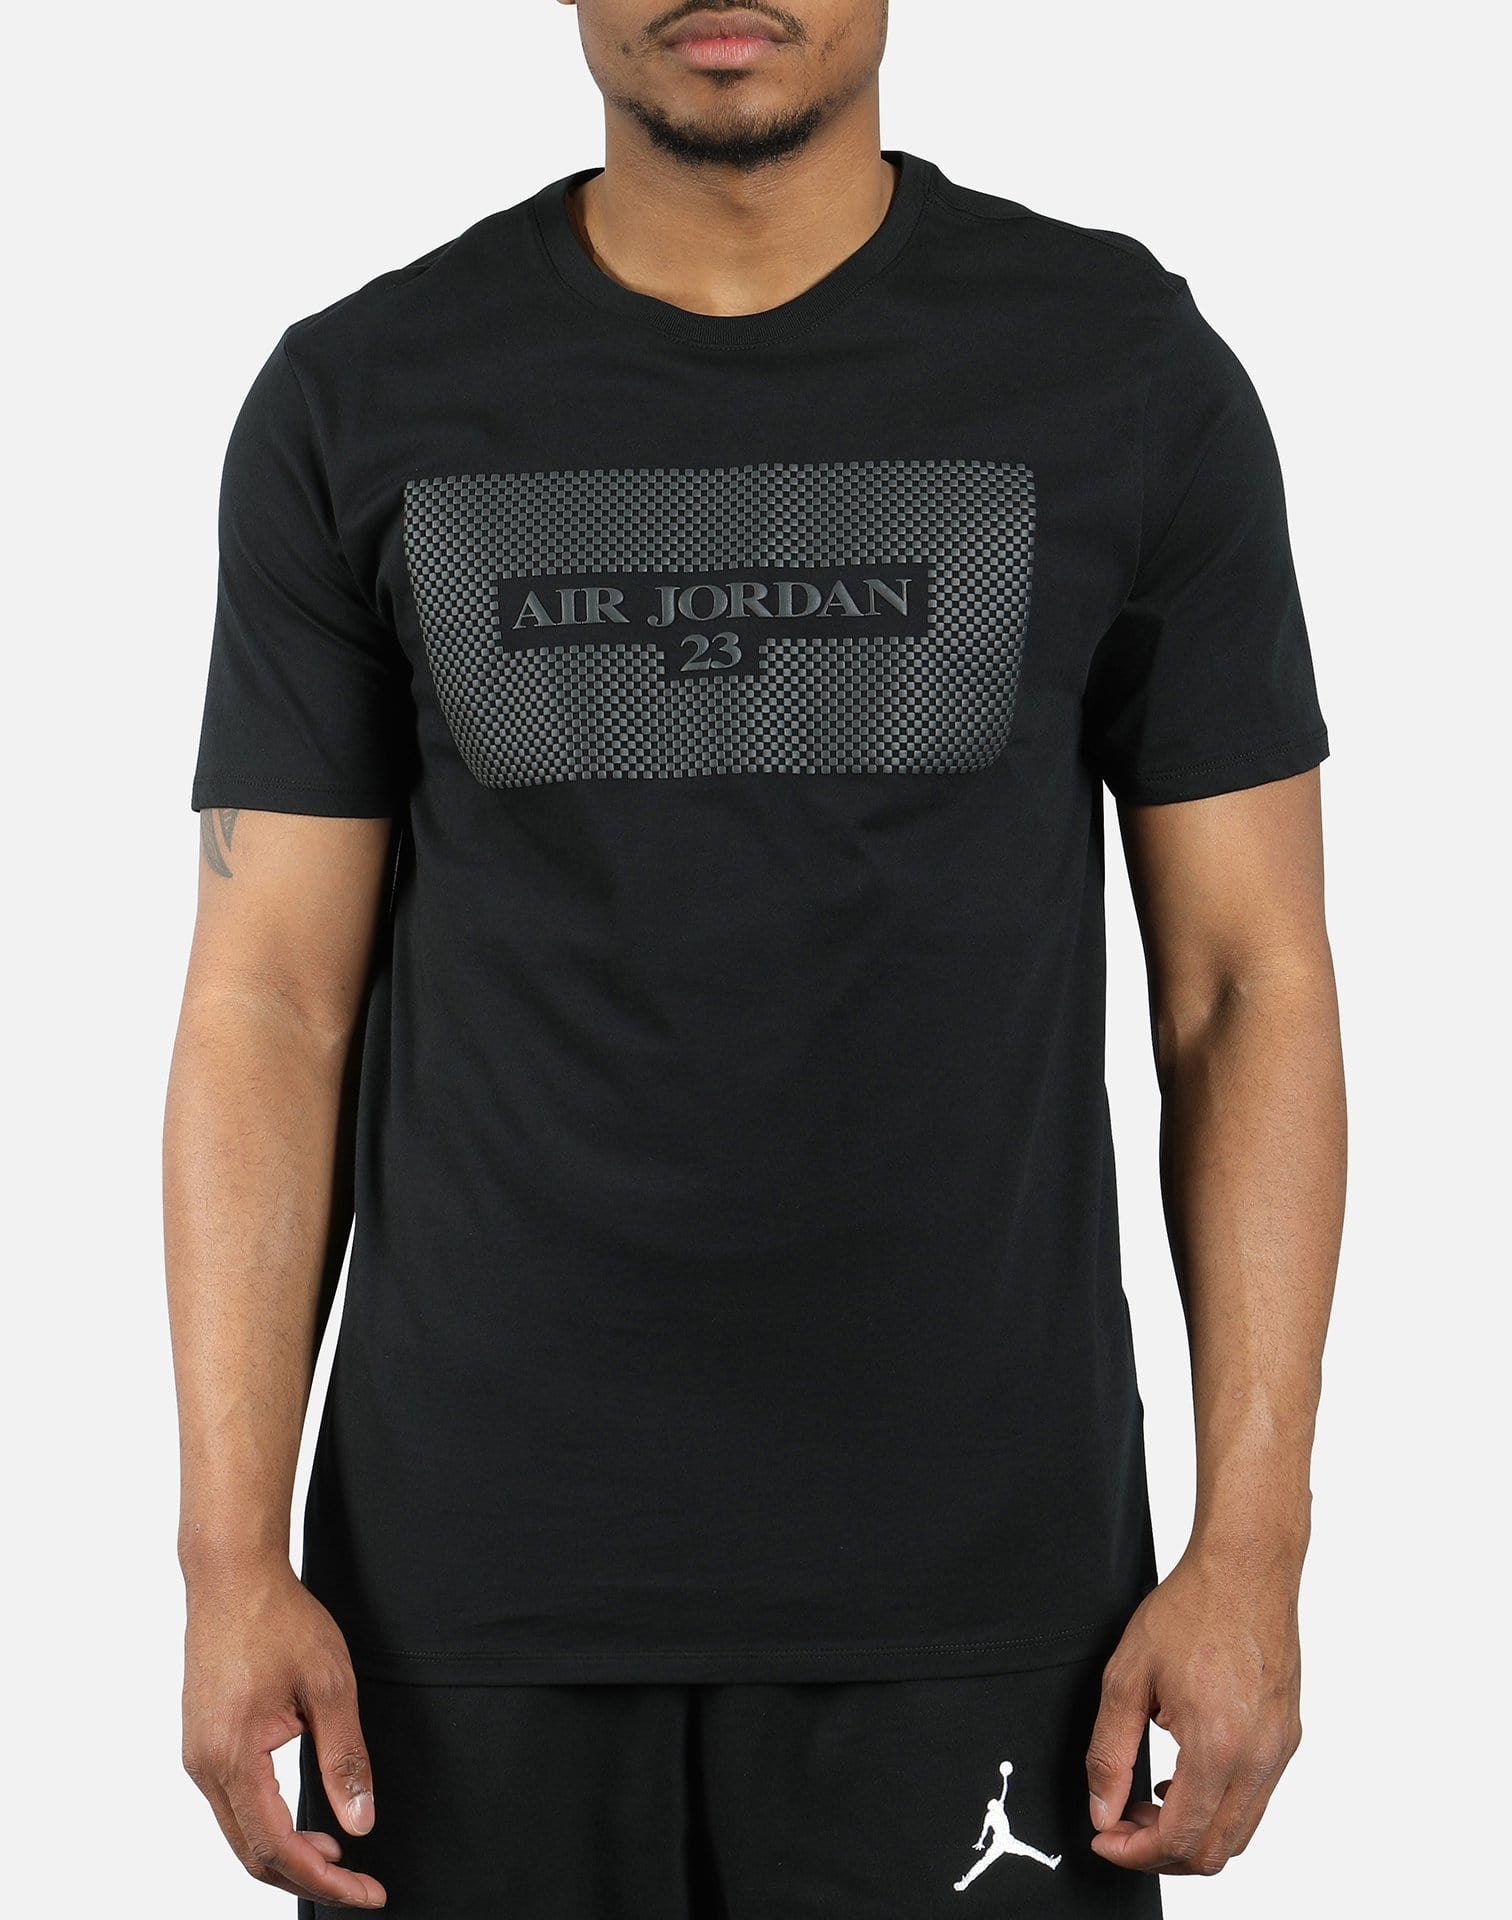 Jordan Men's JSW AJ 10 Graphic 1 Tee